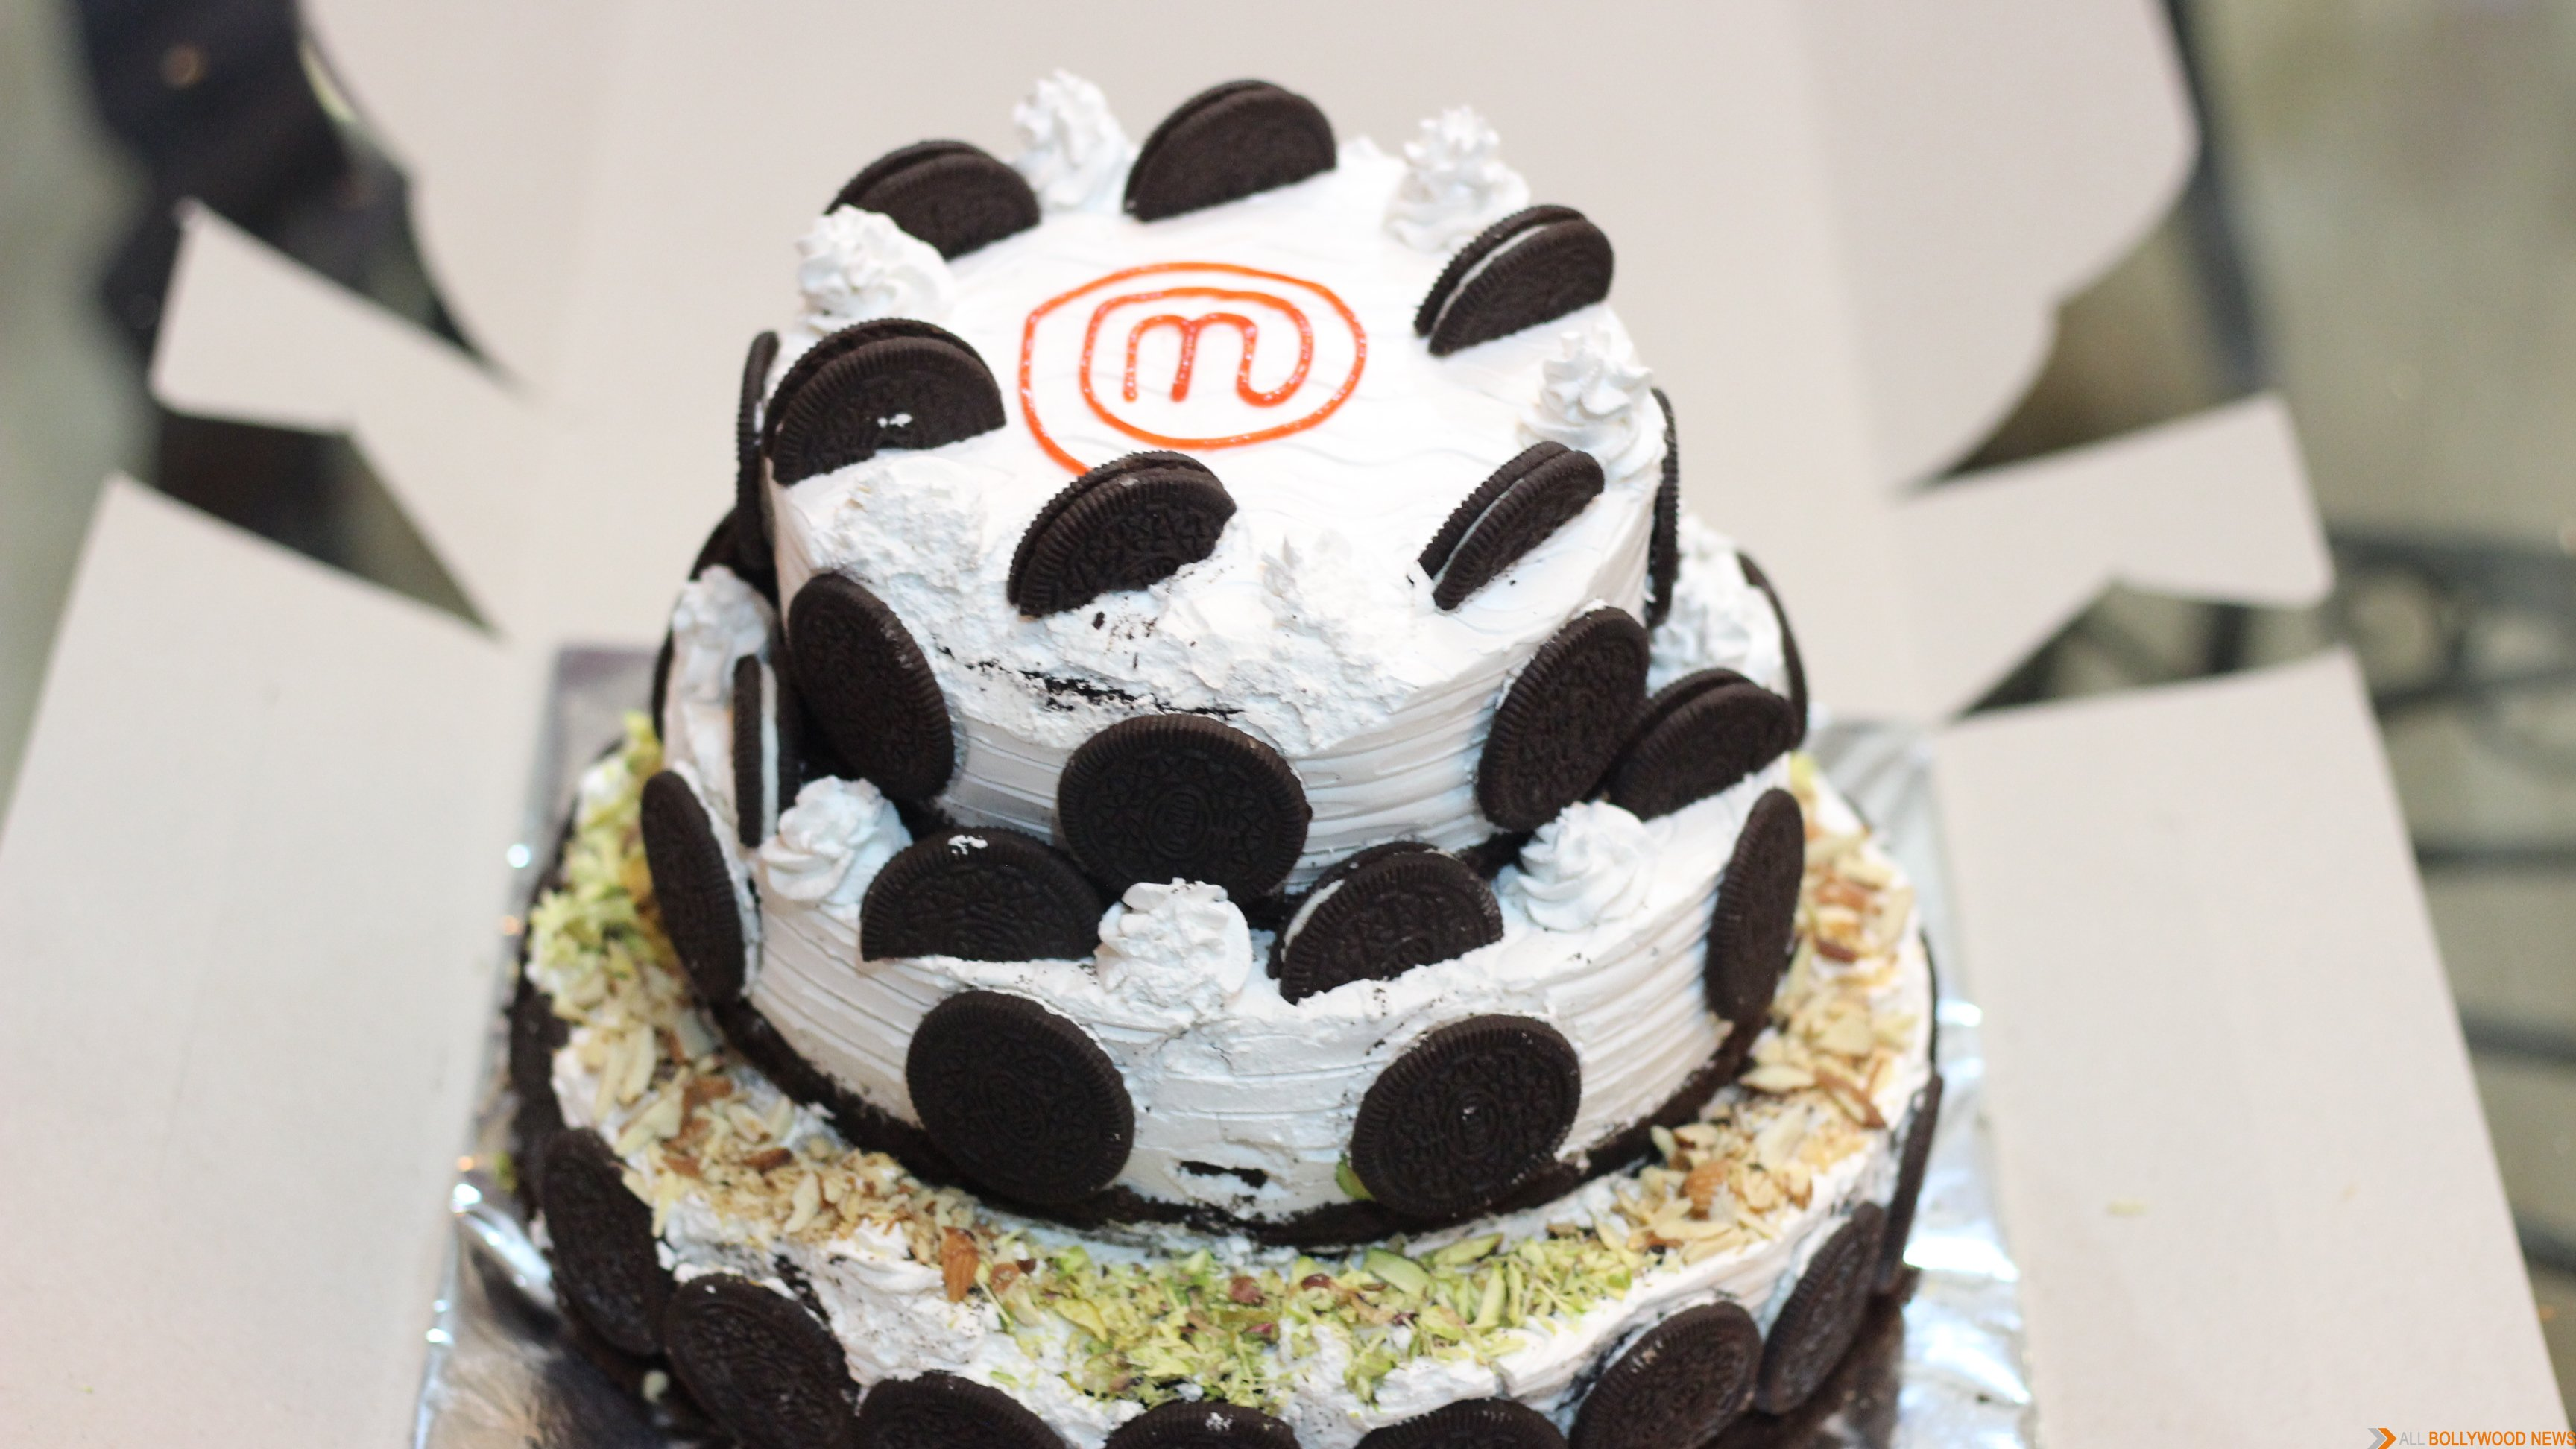 Vegan cake for Aamir Khan from MasterChef India-4 finalists